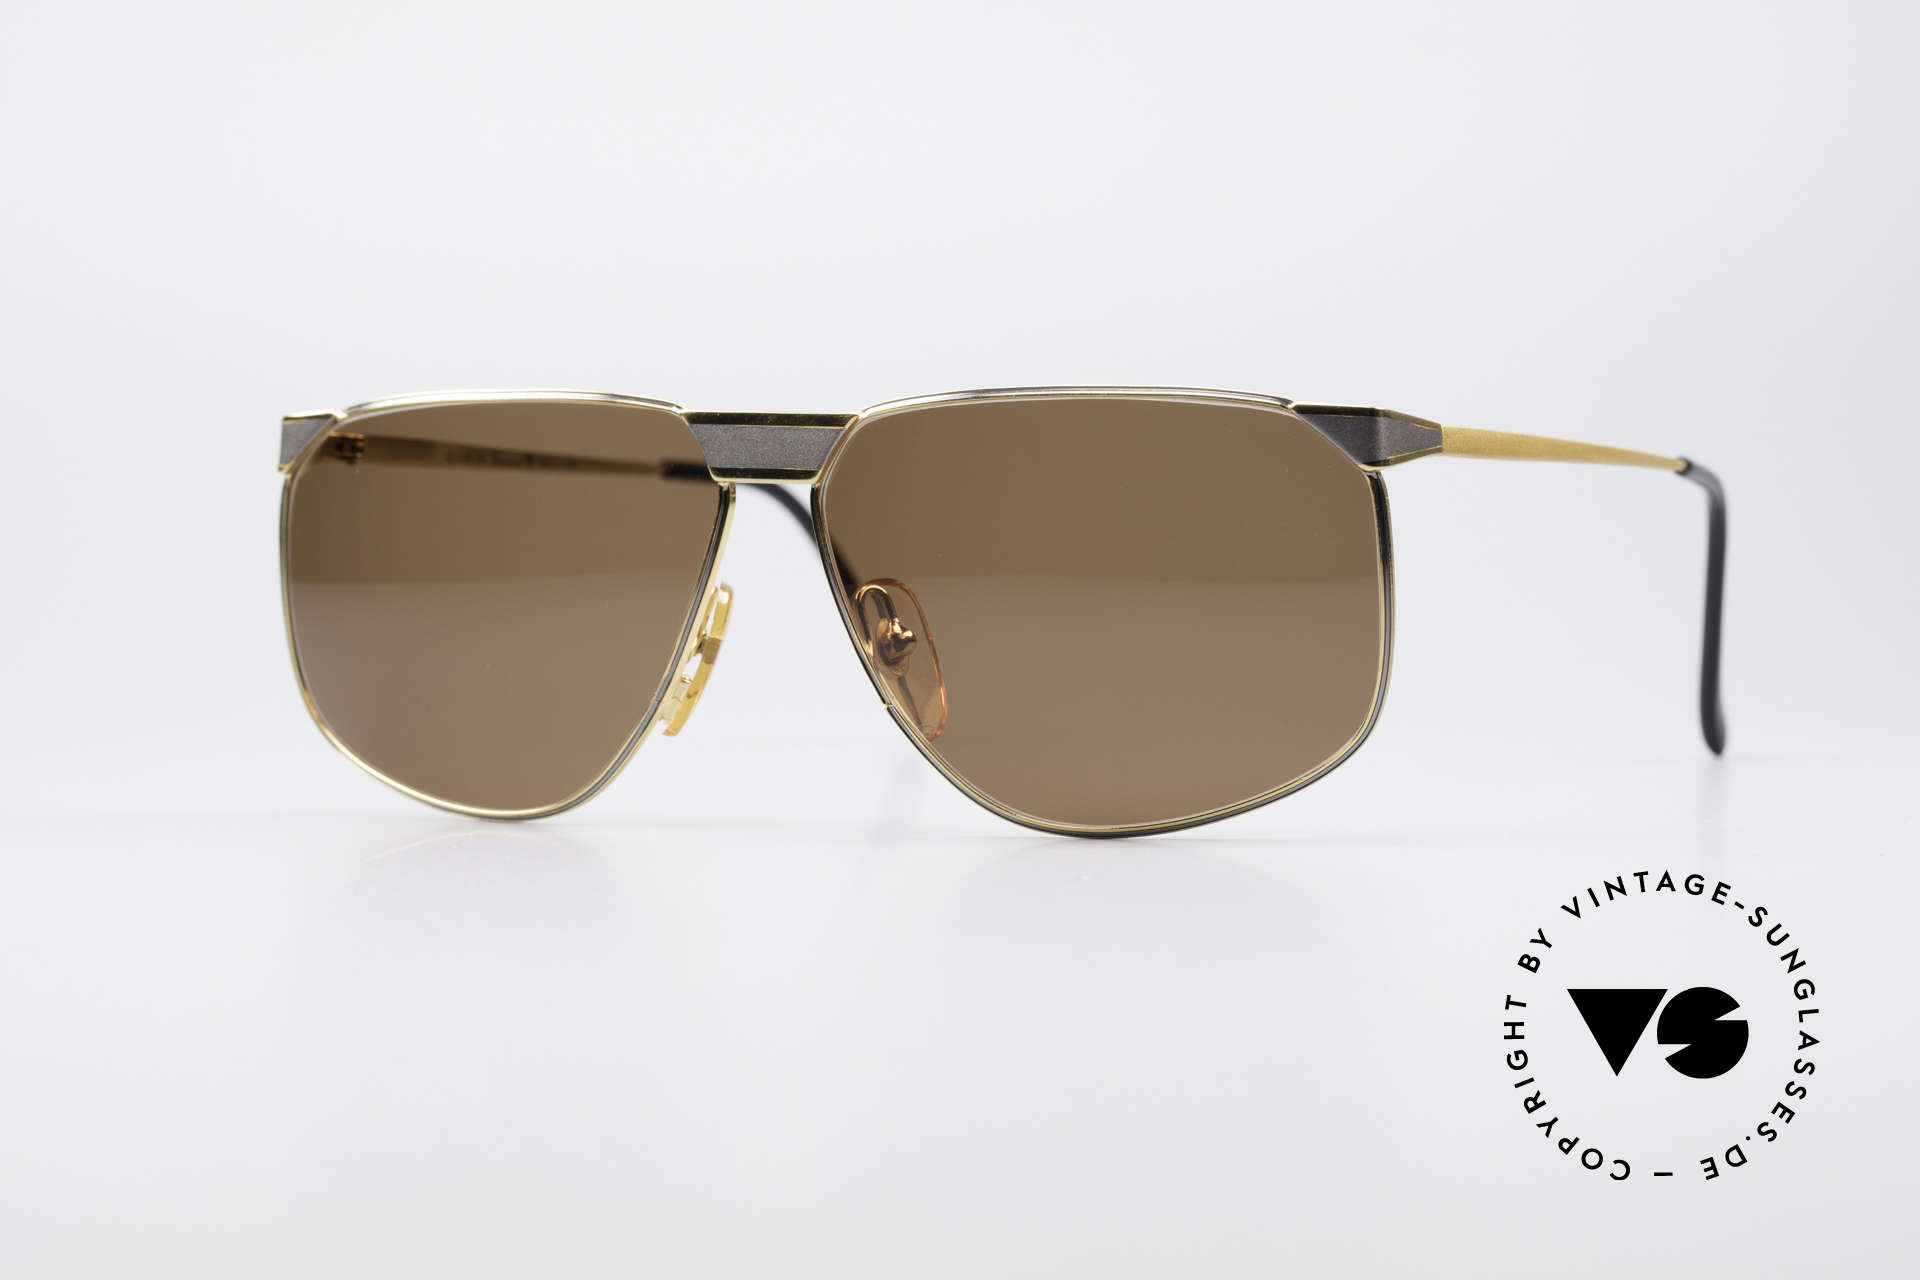 Casanova NM7 24KT Gold Plated Shades, rare vintage Casanova sunglasses from the 1980's, Made for Men and Women